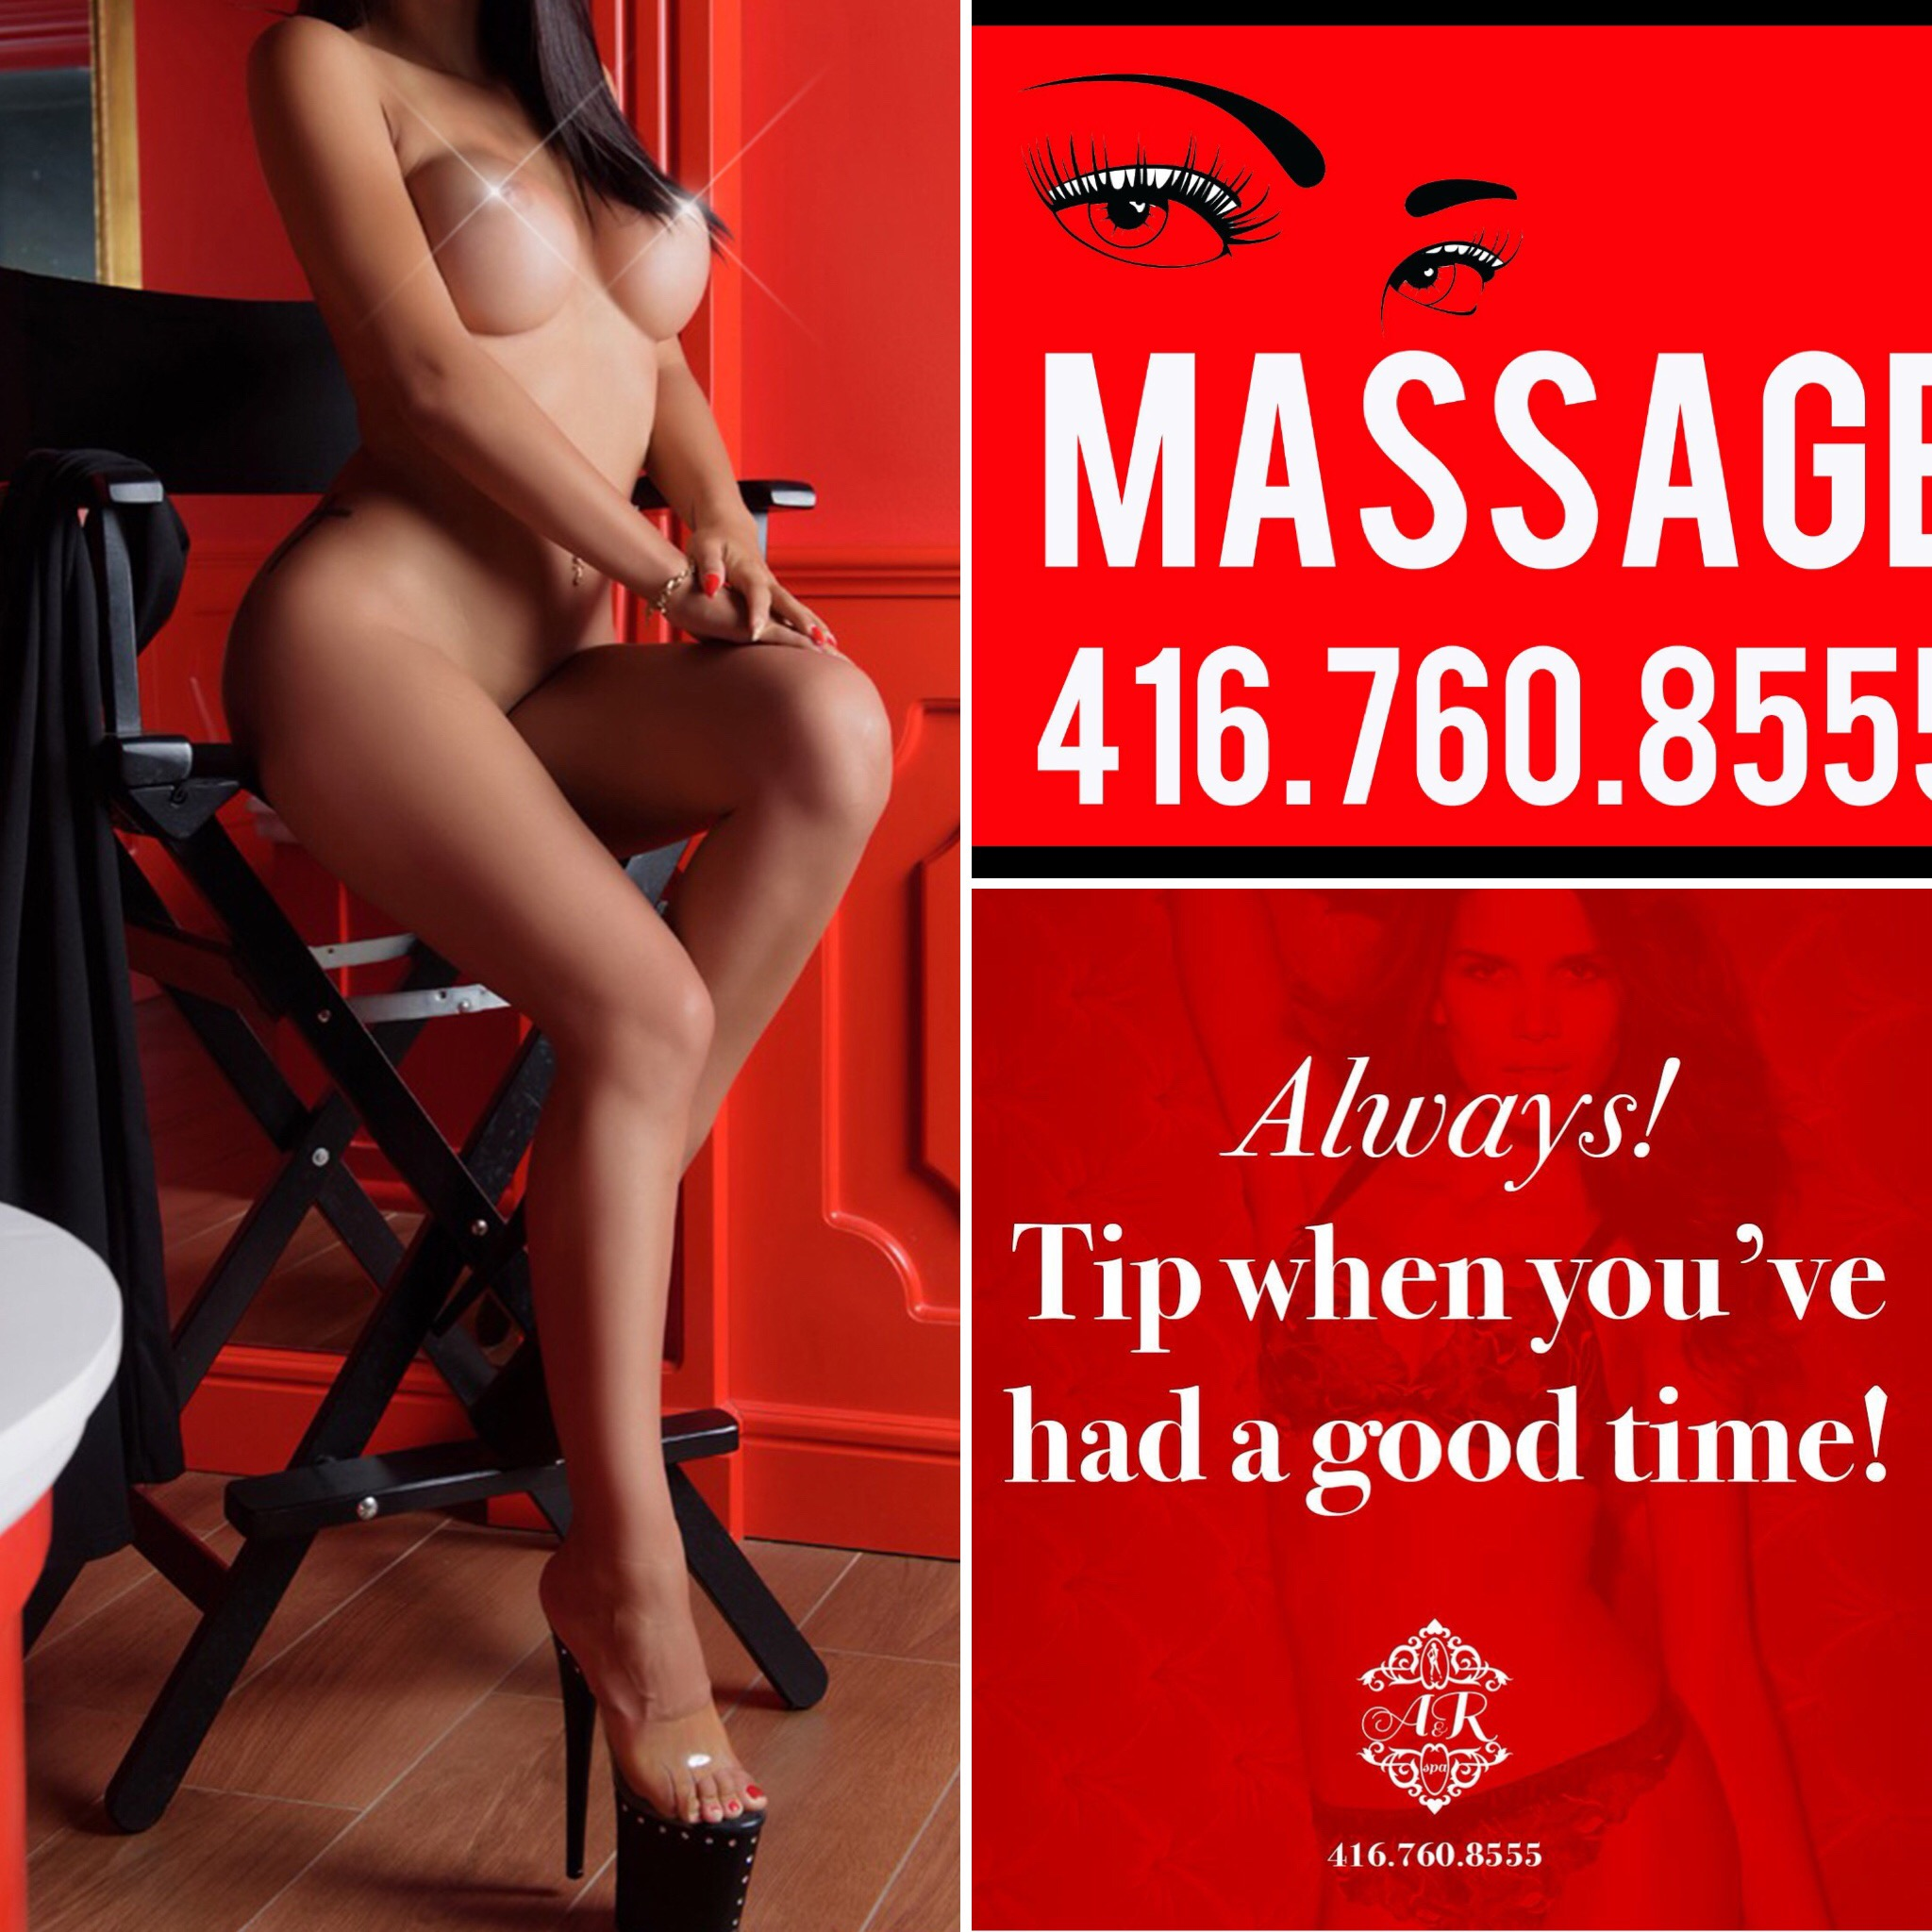 NOW HIRING ATTRACTIVE LADIES OF ALL BACKGROUNDS..! BUSY SPA MAKE TOP DOLLAR ��UPSCALE & LICENSED�� WE PAY YOU COMMISSIONS..! DOUBLE YOUR INCOME��